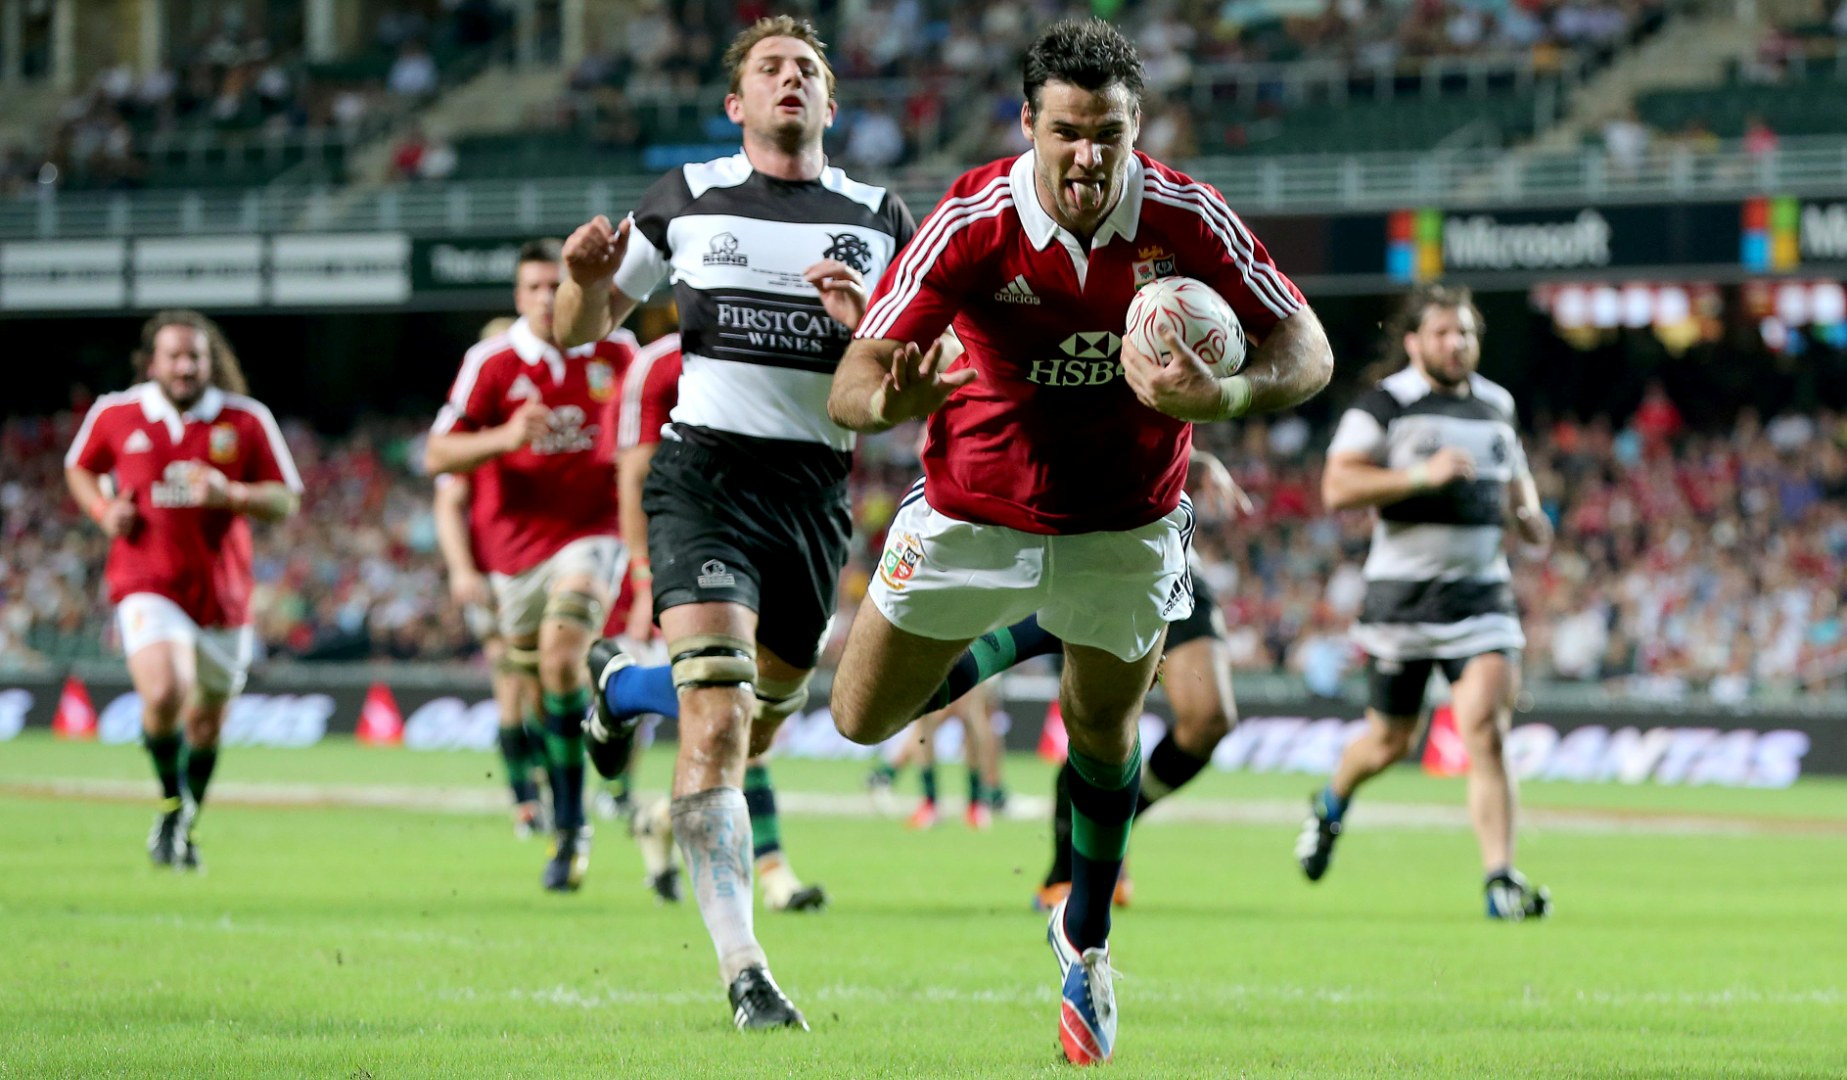 Classic Match: 2013 Lions kick off Tour in style against Barbarians